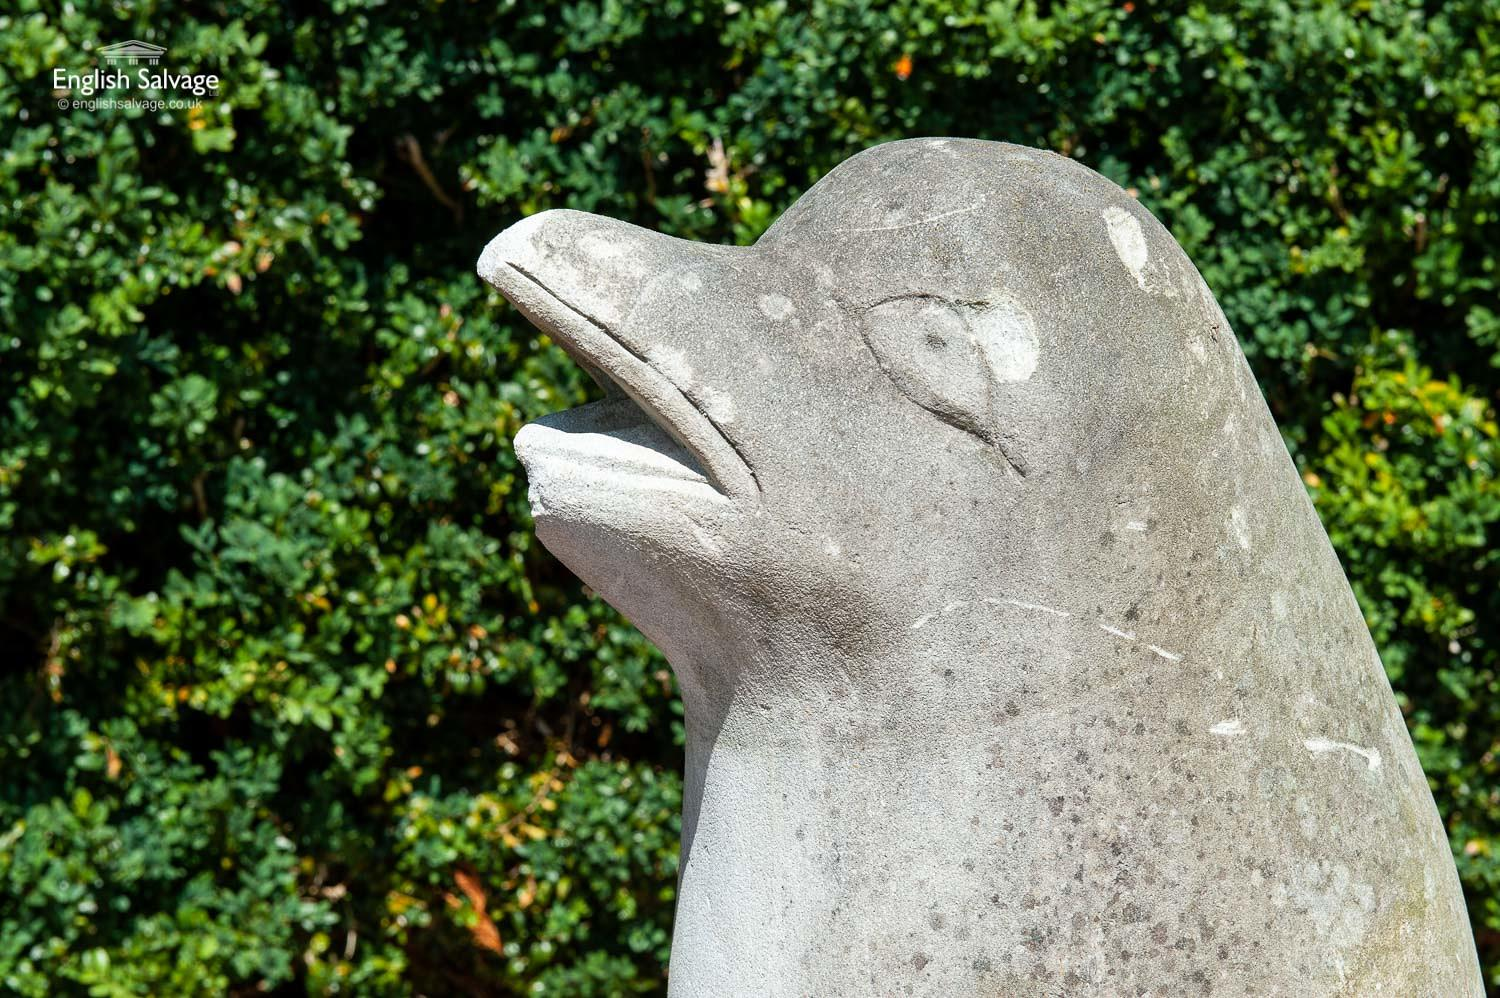 composition-stone-dolphin_28011_pic3_siz